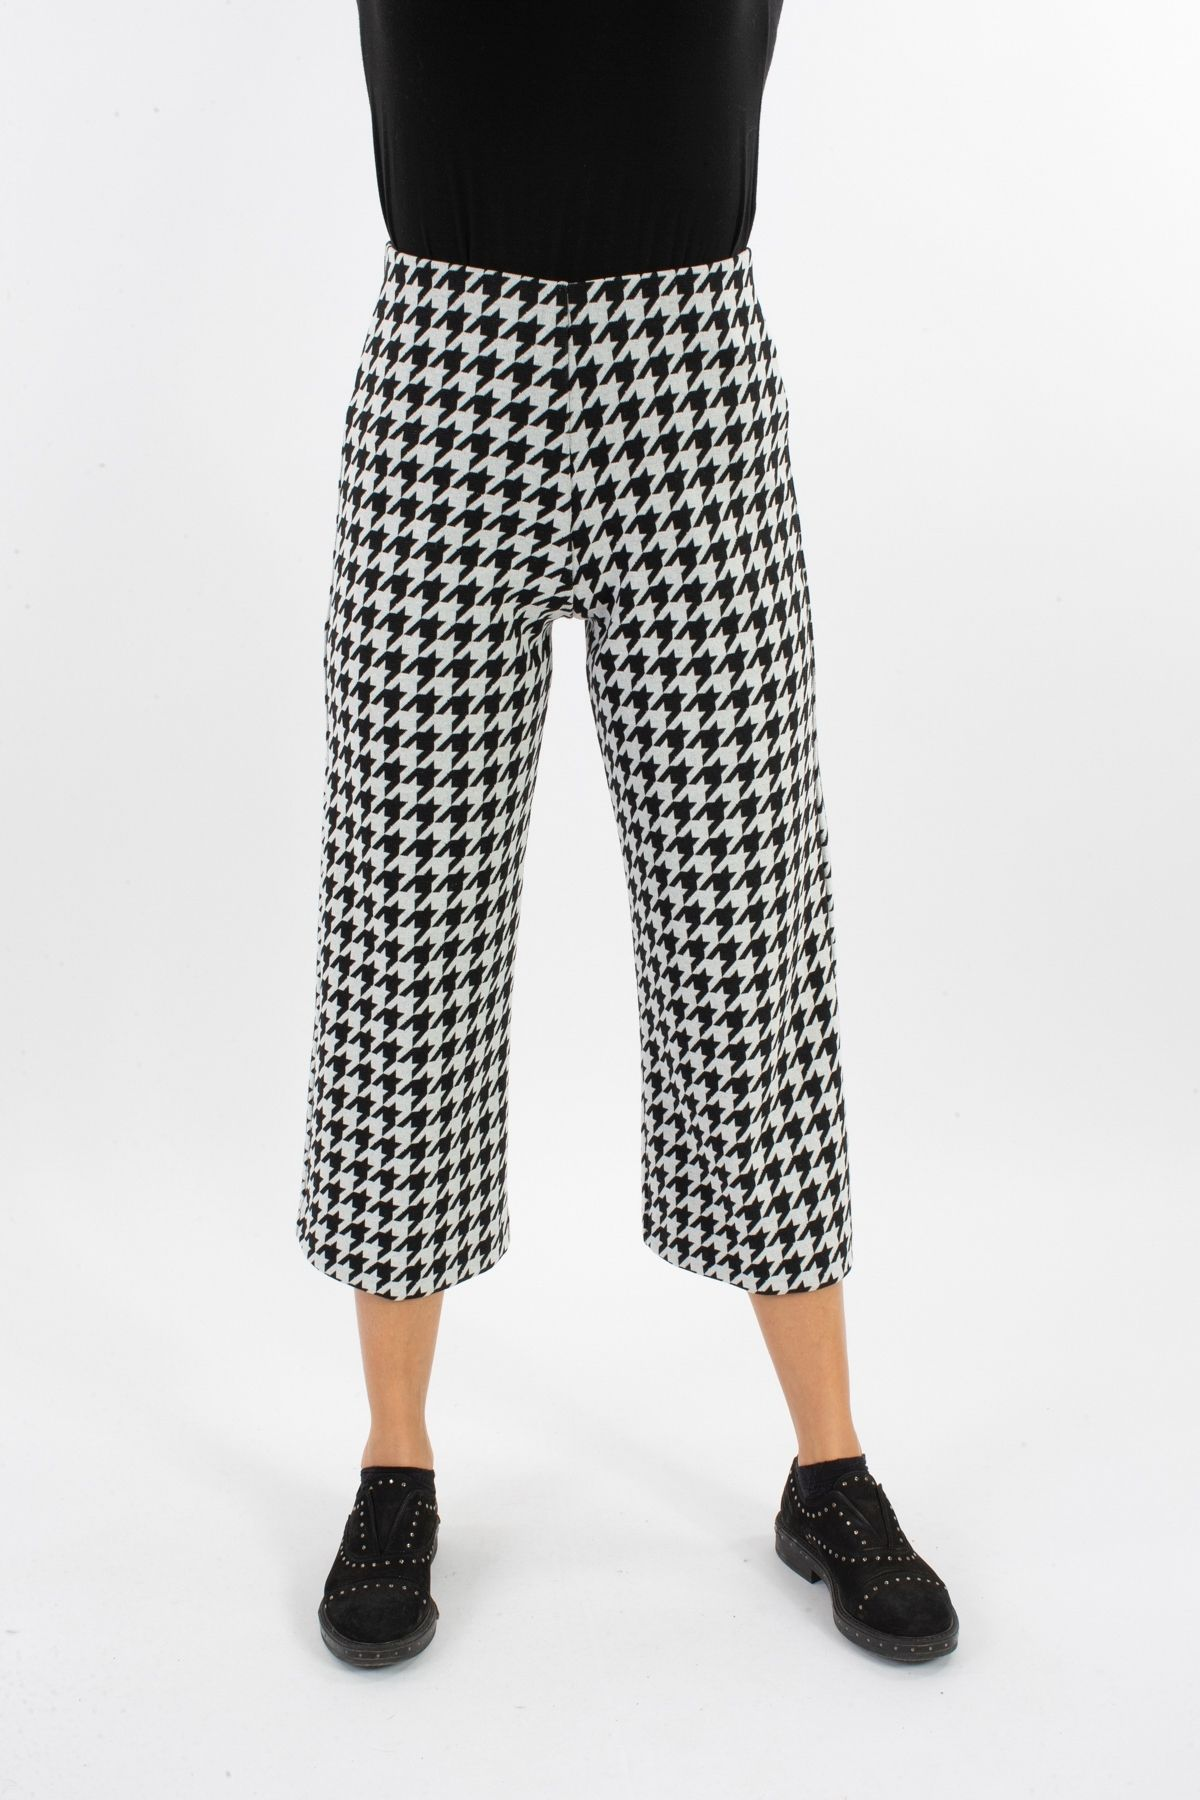 PANTALONE CROPPED IN PIED DE POULLE  for woman - WHITE/BLACK - Paquito Pronto Moda Shop Online